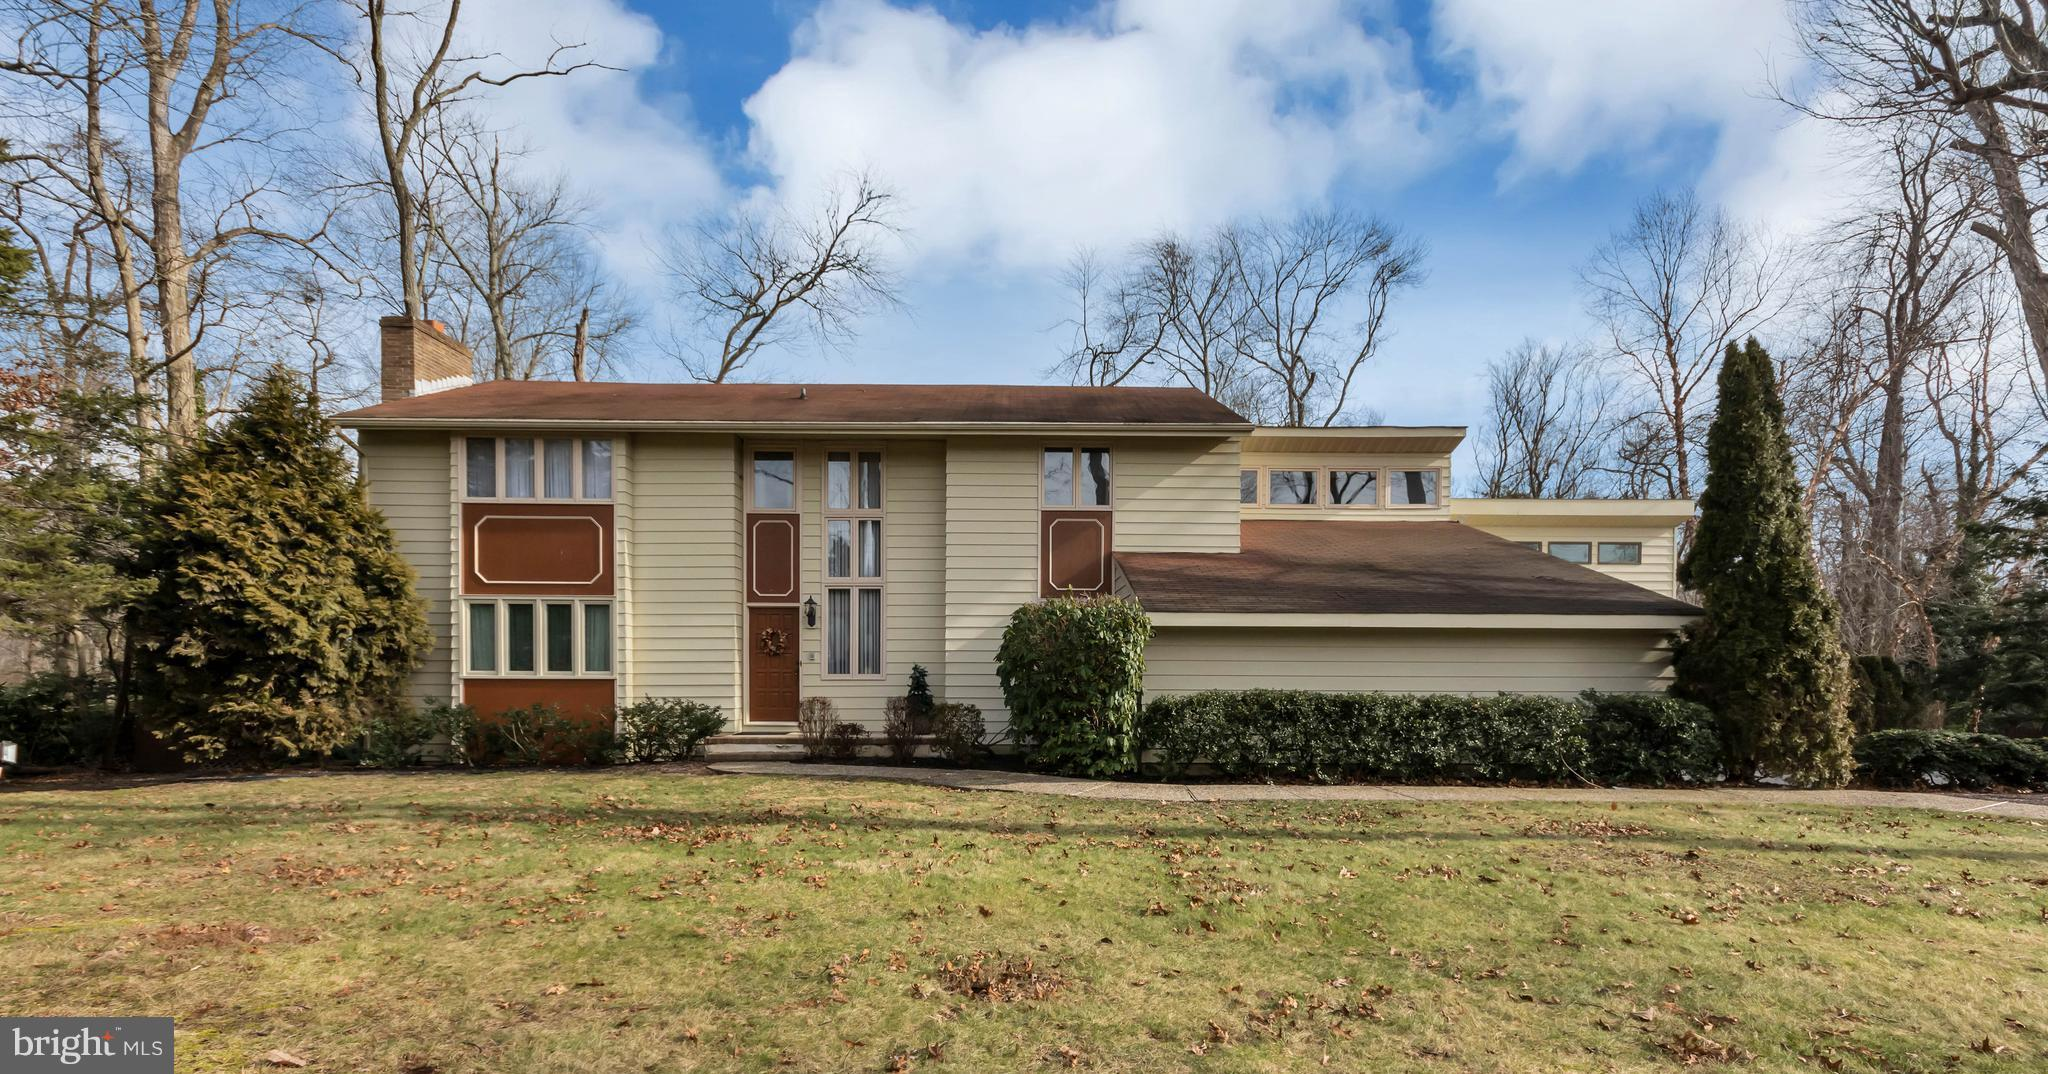 277 N BROOKFIELD STREET, VINELAND, NJ 08361